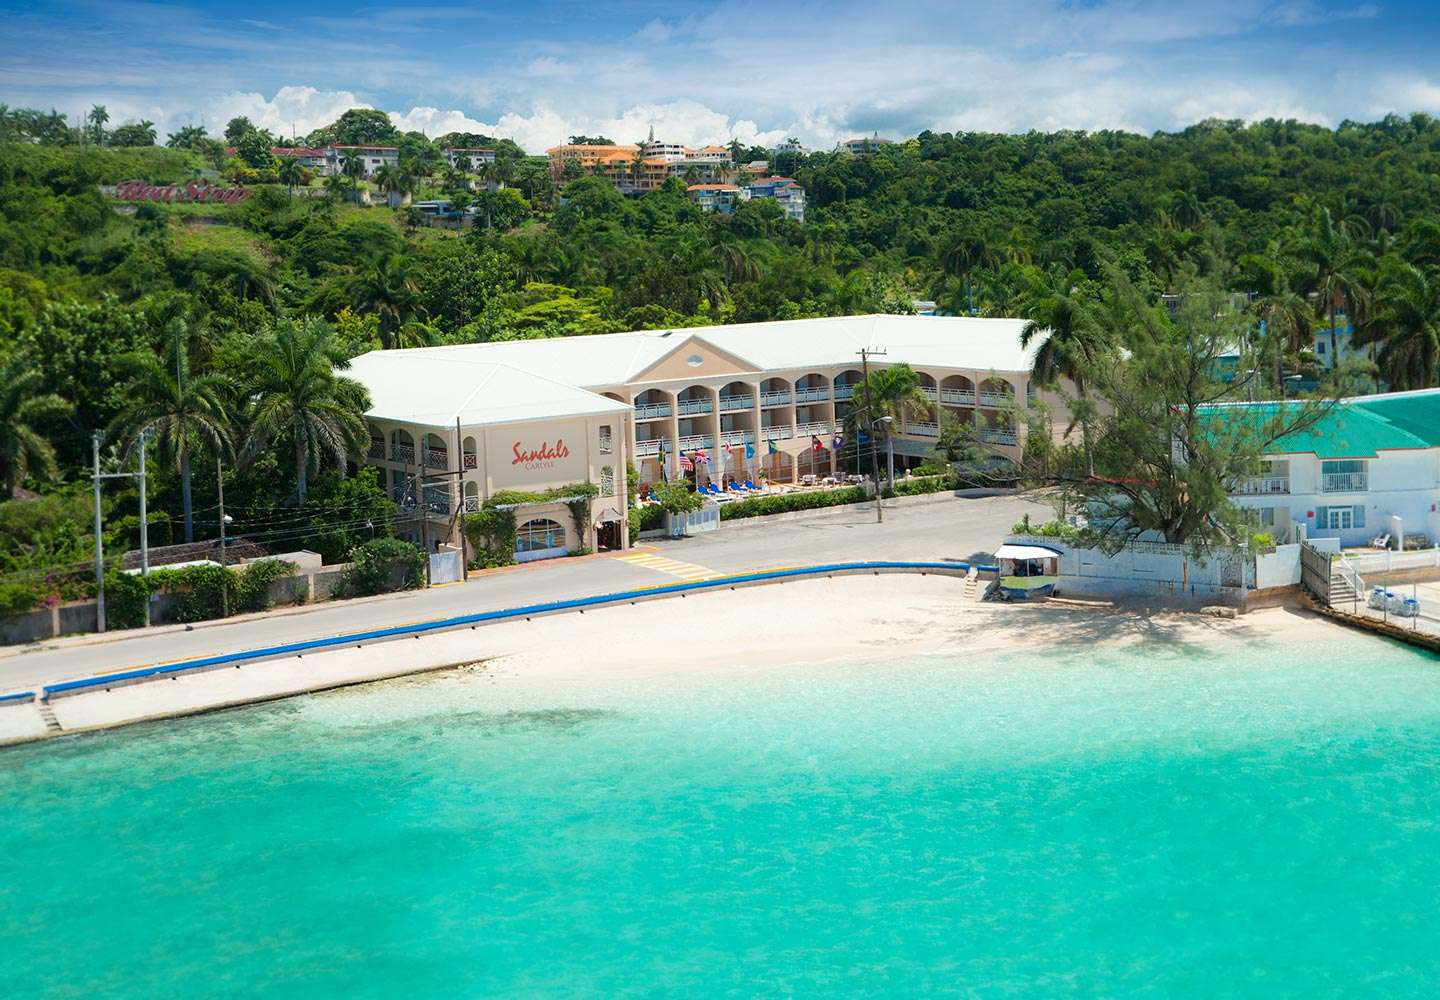 Image of Sandals Inn, Saint James, Jamaica